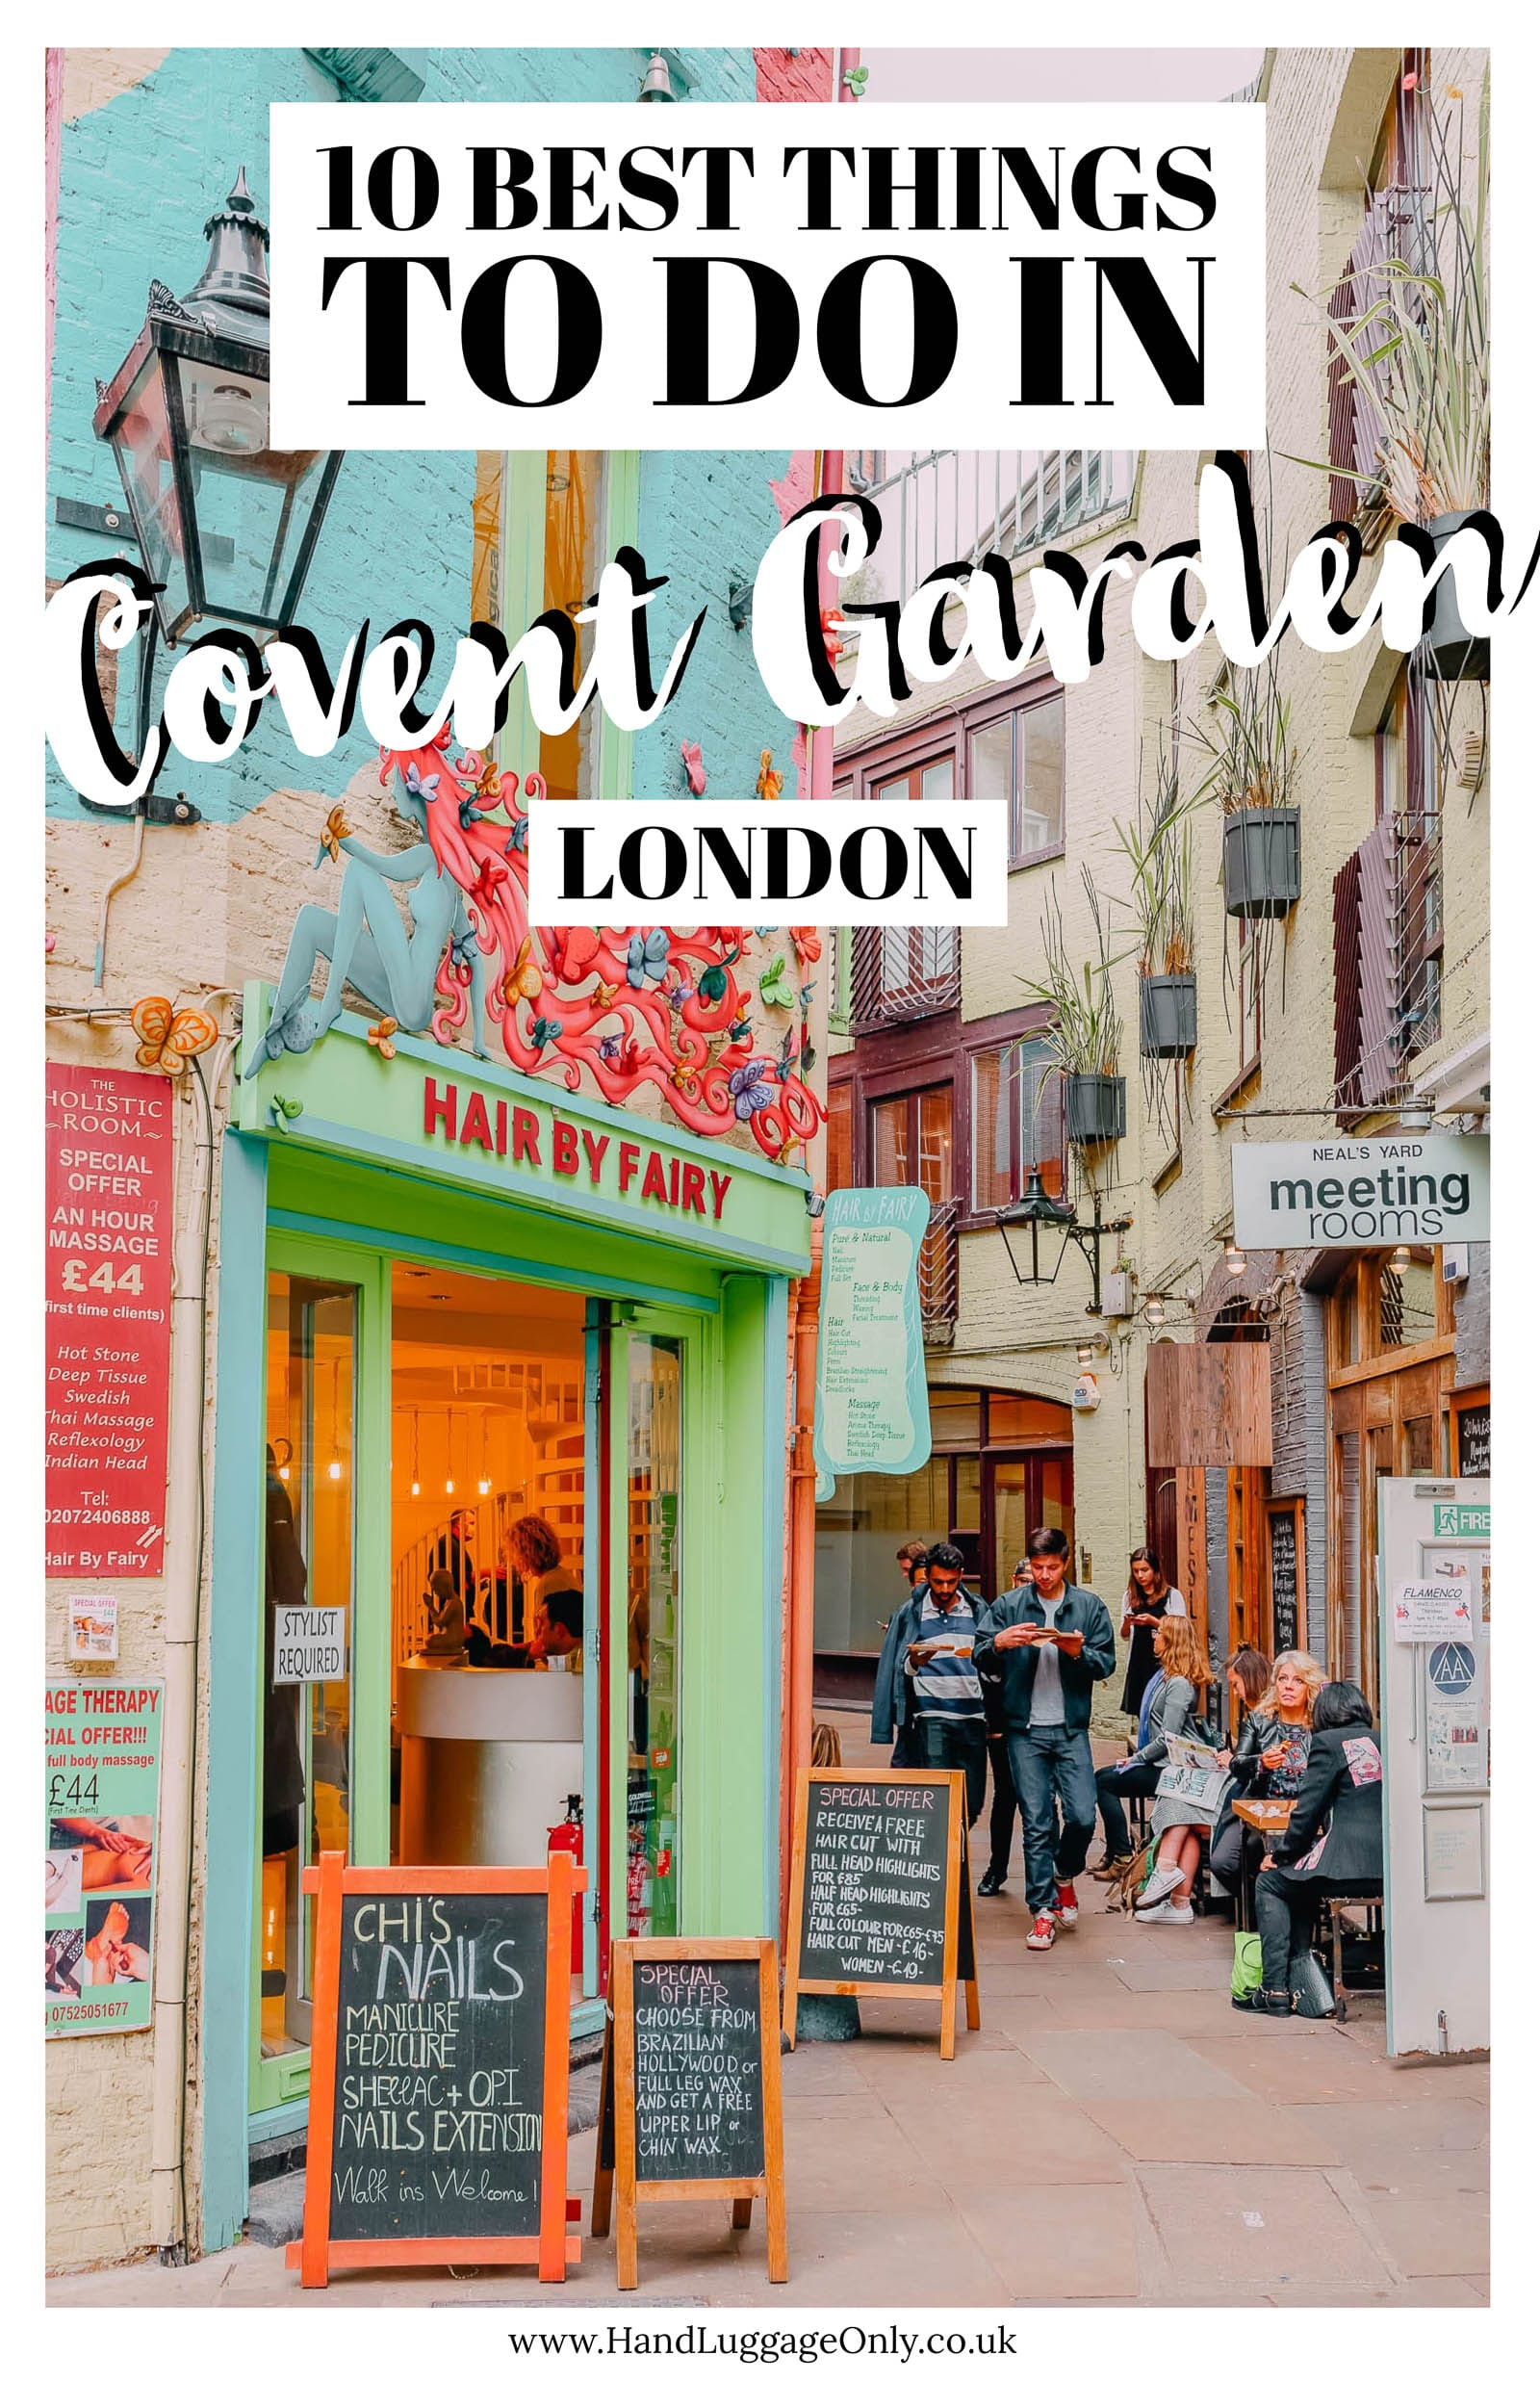 10 Best Things To Do In Covent Garden - London (1)